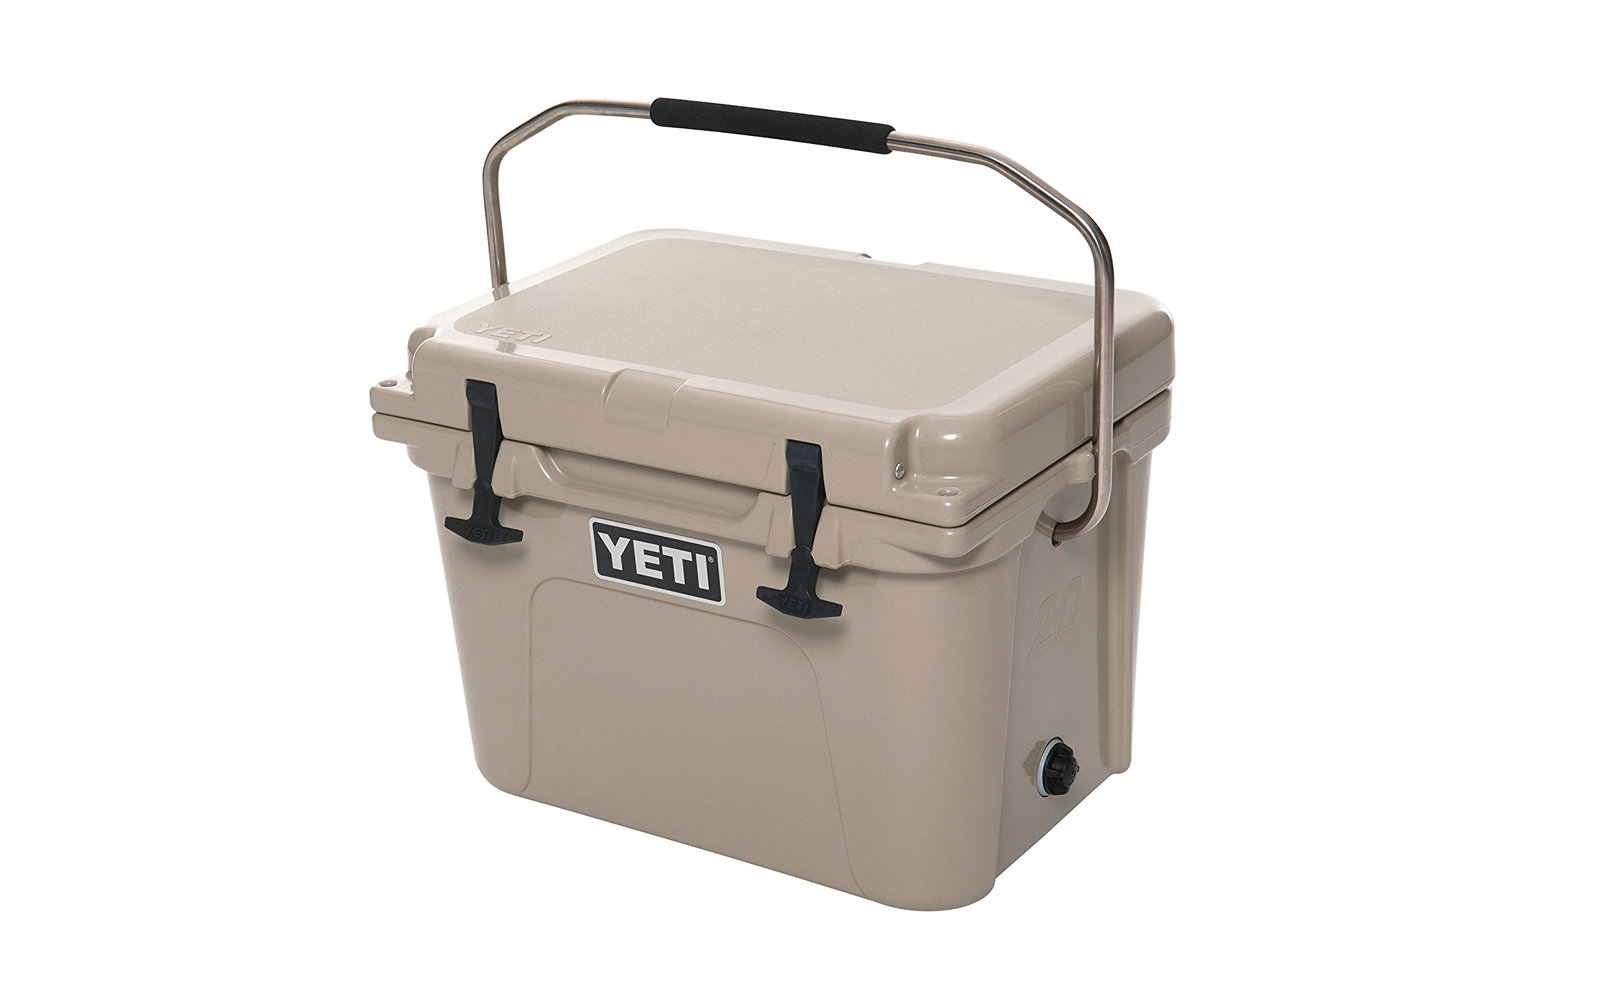 Amazon Yeti Roadie Cooler